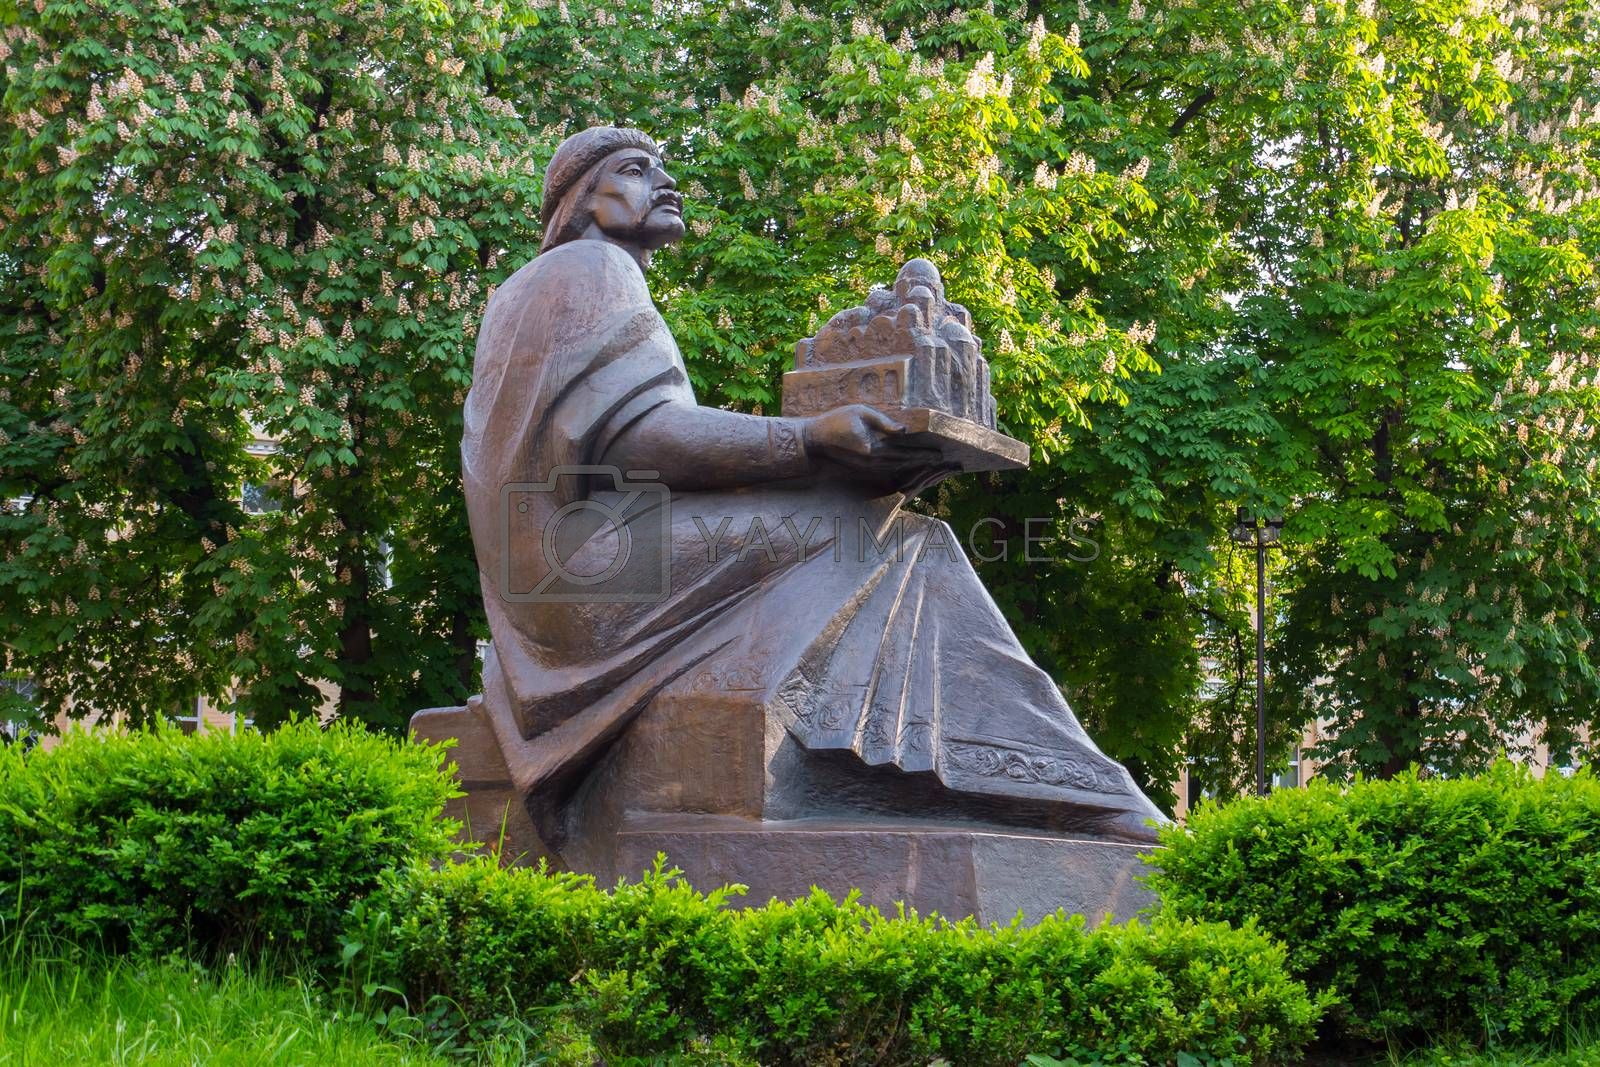 Royalty free image of Monument to the prince of Kievan Rus Yaroslav the Wise which is located near the metro station Golden Gate in Kiev by Adamchuk